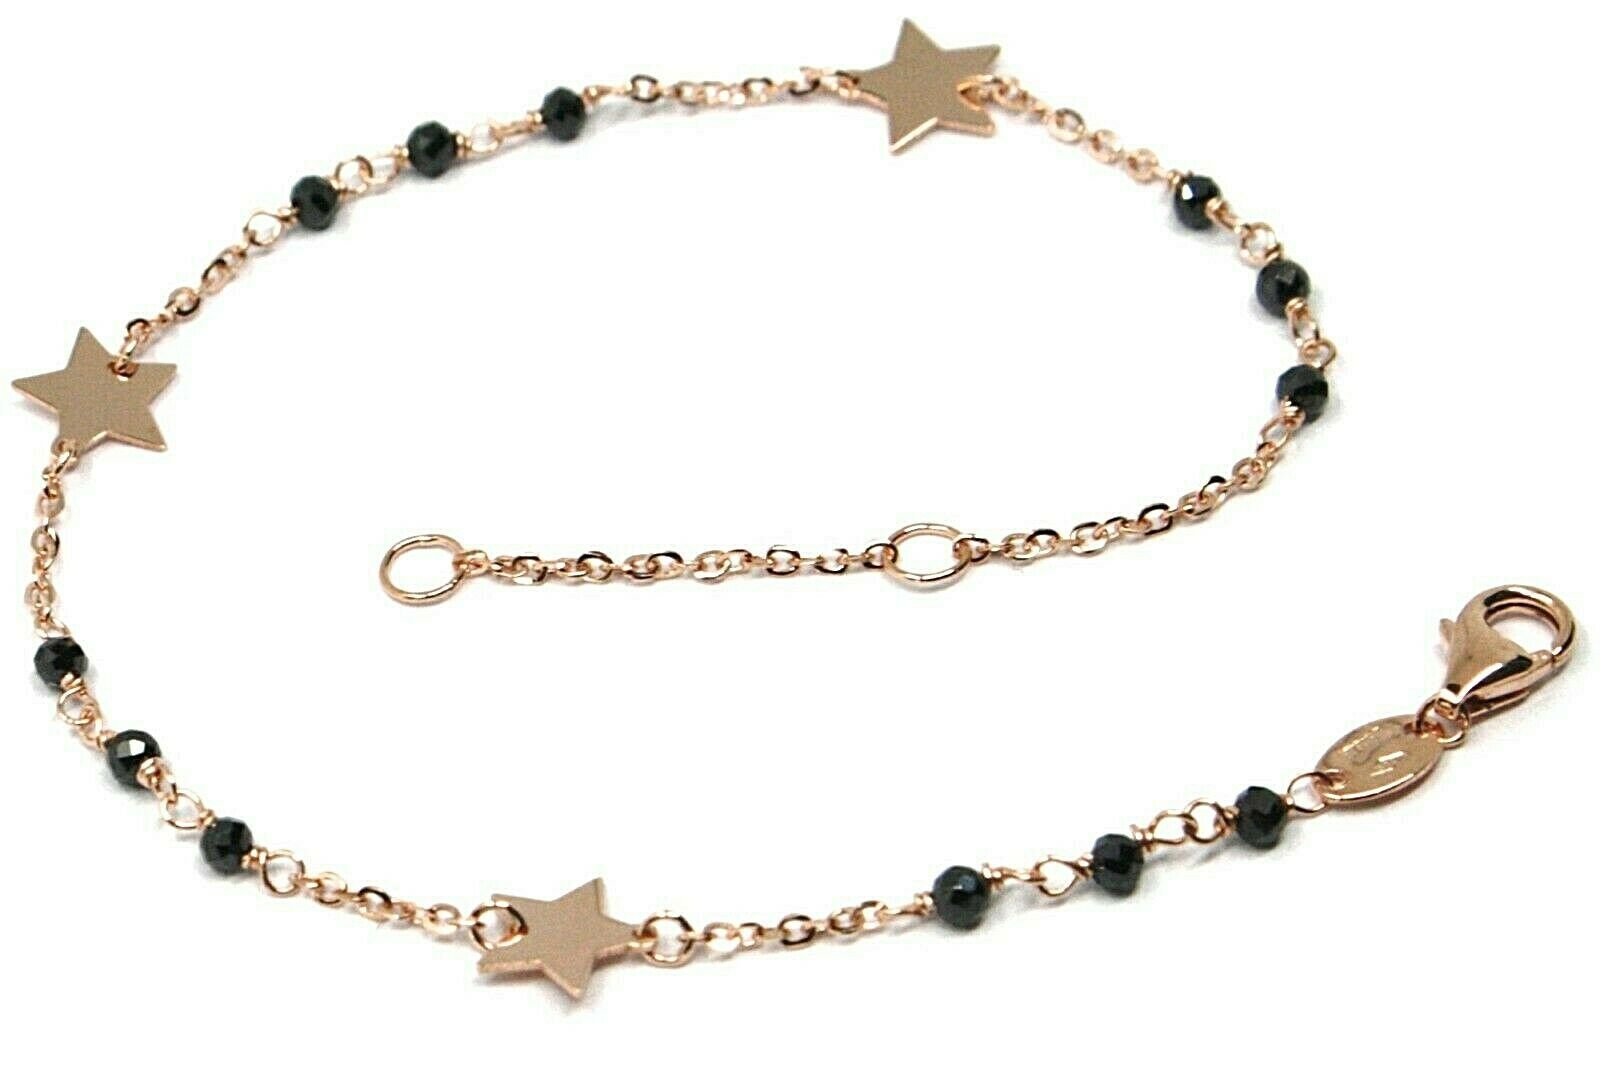 18K ROSE GOLD BRACELET, FACETED BLACK SPINEL, FLAT STARS, ROLO CHAIN ALTERNATE